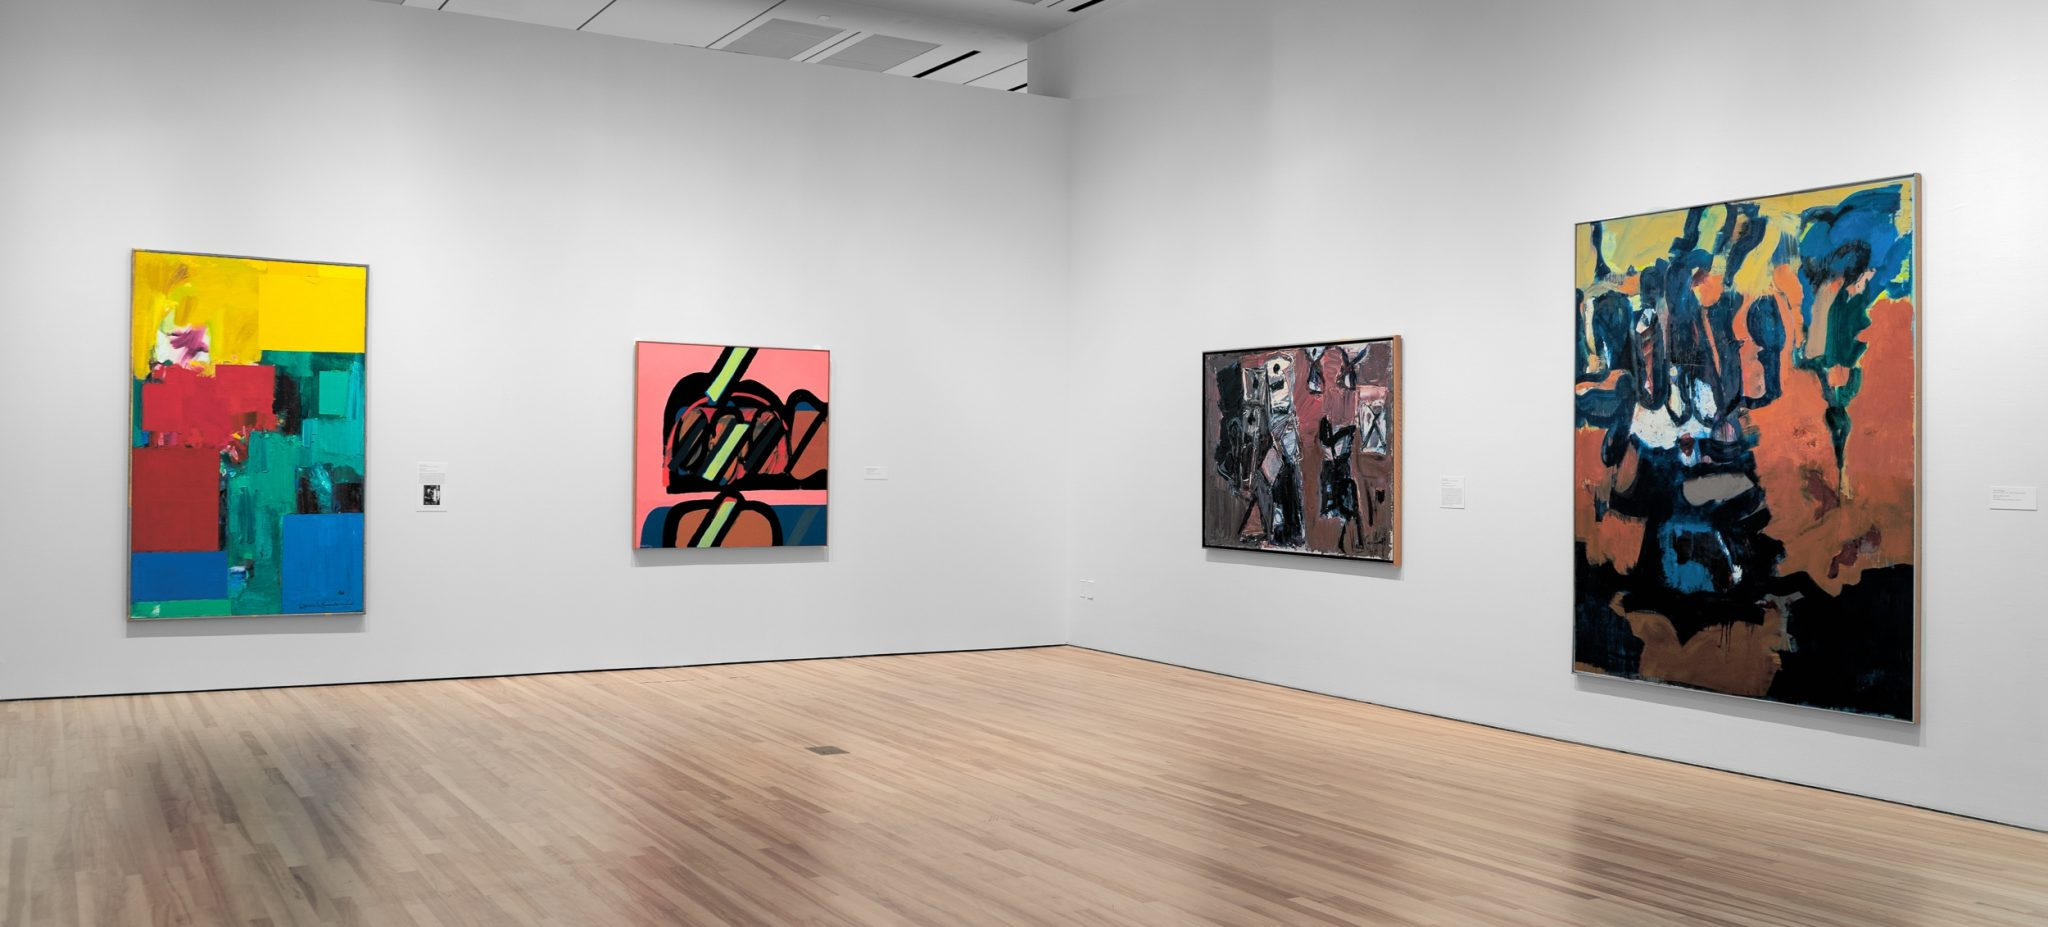 nstallation View ofExpanding Abstraction: Pushing the Boundaries of Painting in the Americas 1958–1983, with from left:Hans Hoffman, Elysium, 1960; Manuel Hernández Gómez, Formas, 1969; Iberê Camargo, Andamento, 1976; Grace Hartigan, Mountain Woman, 1964, Blanton Museum of Art, The University of Texas at Austin, October 4, 2020–January 10, 2021,© 2020Renate, Hans & Maria Hofmann Trust/Artists Rights Society (ARS), New York